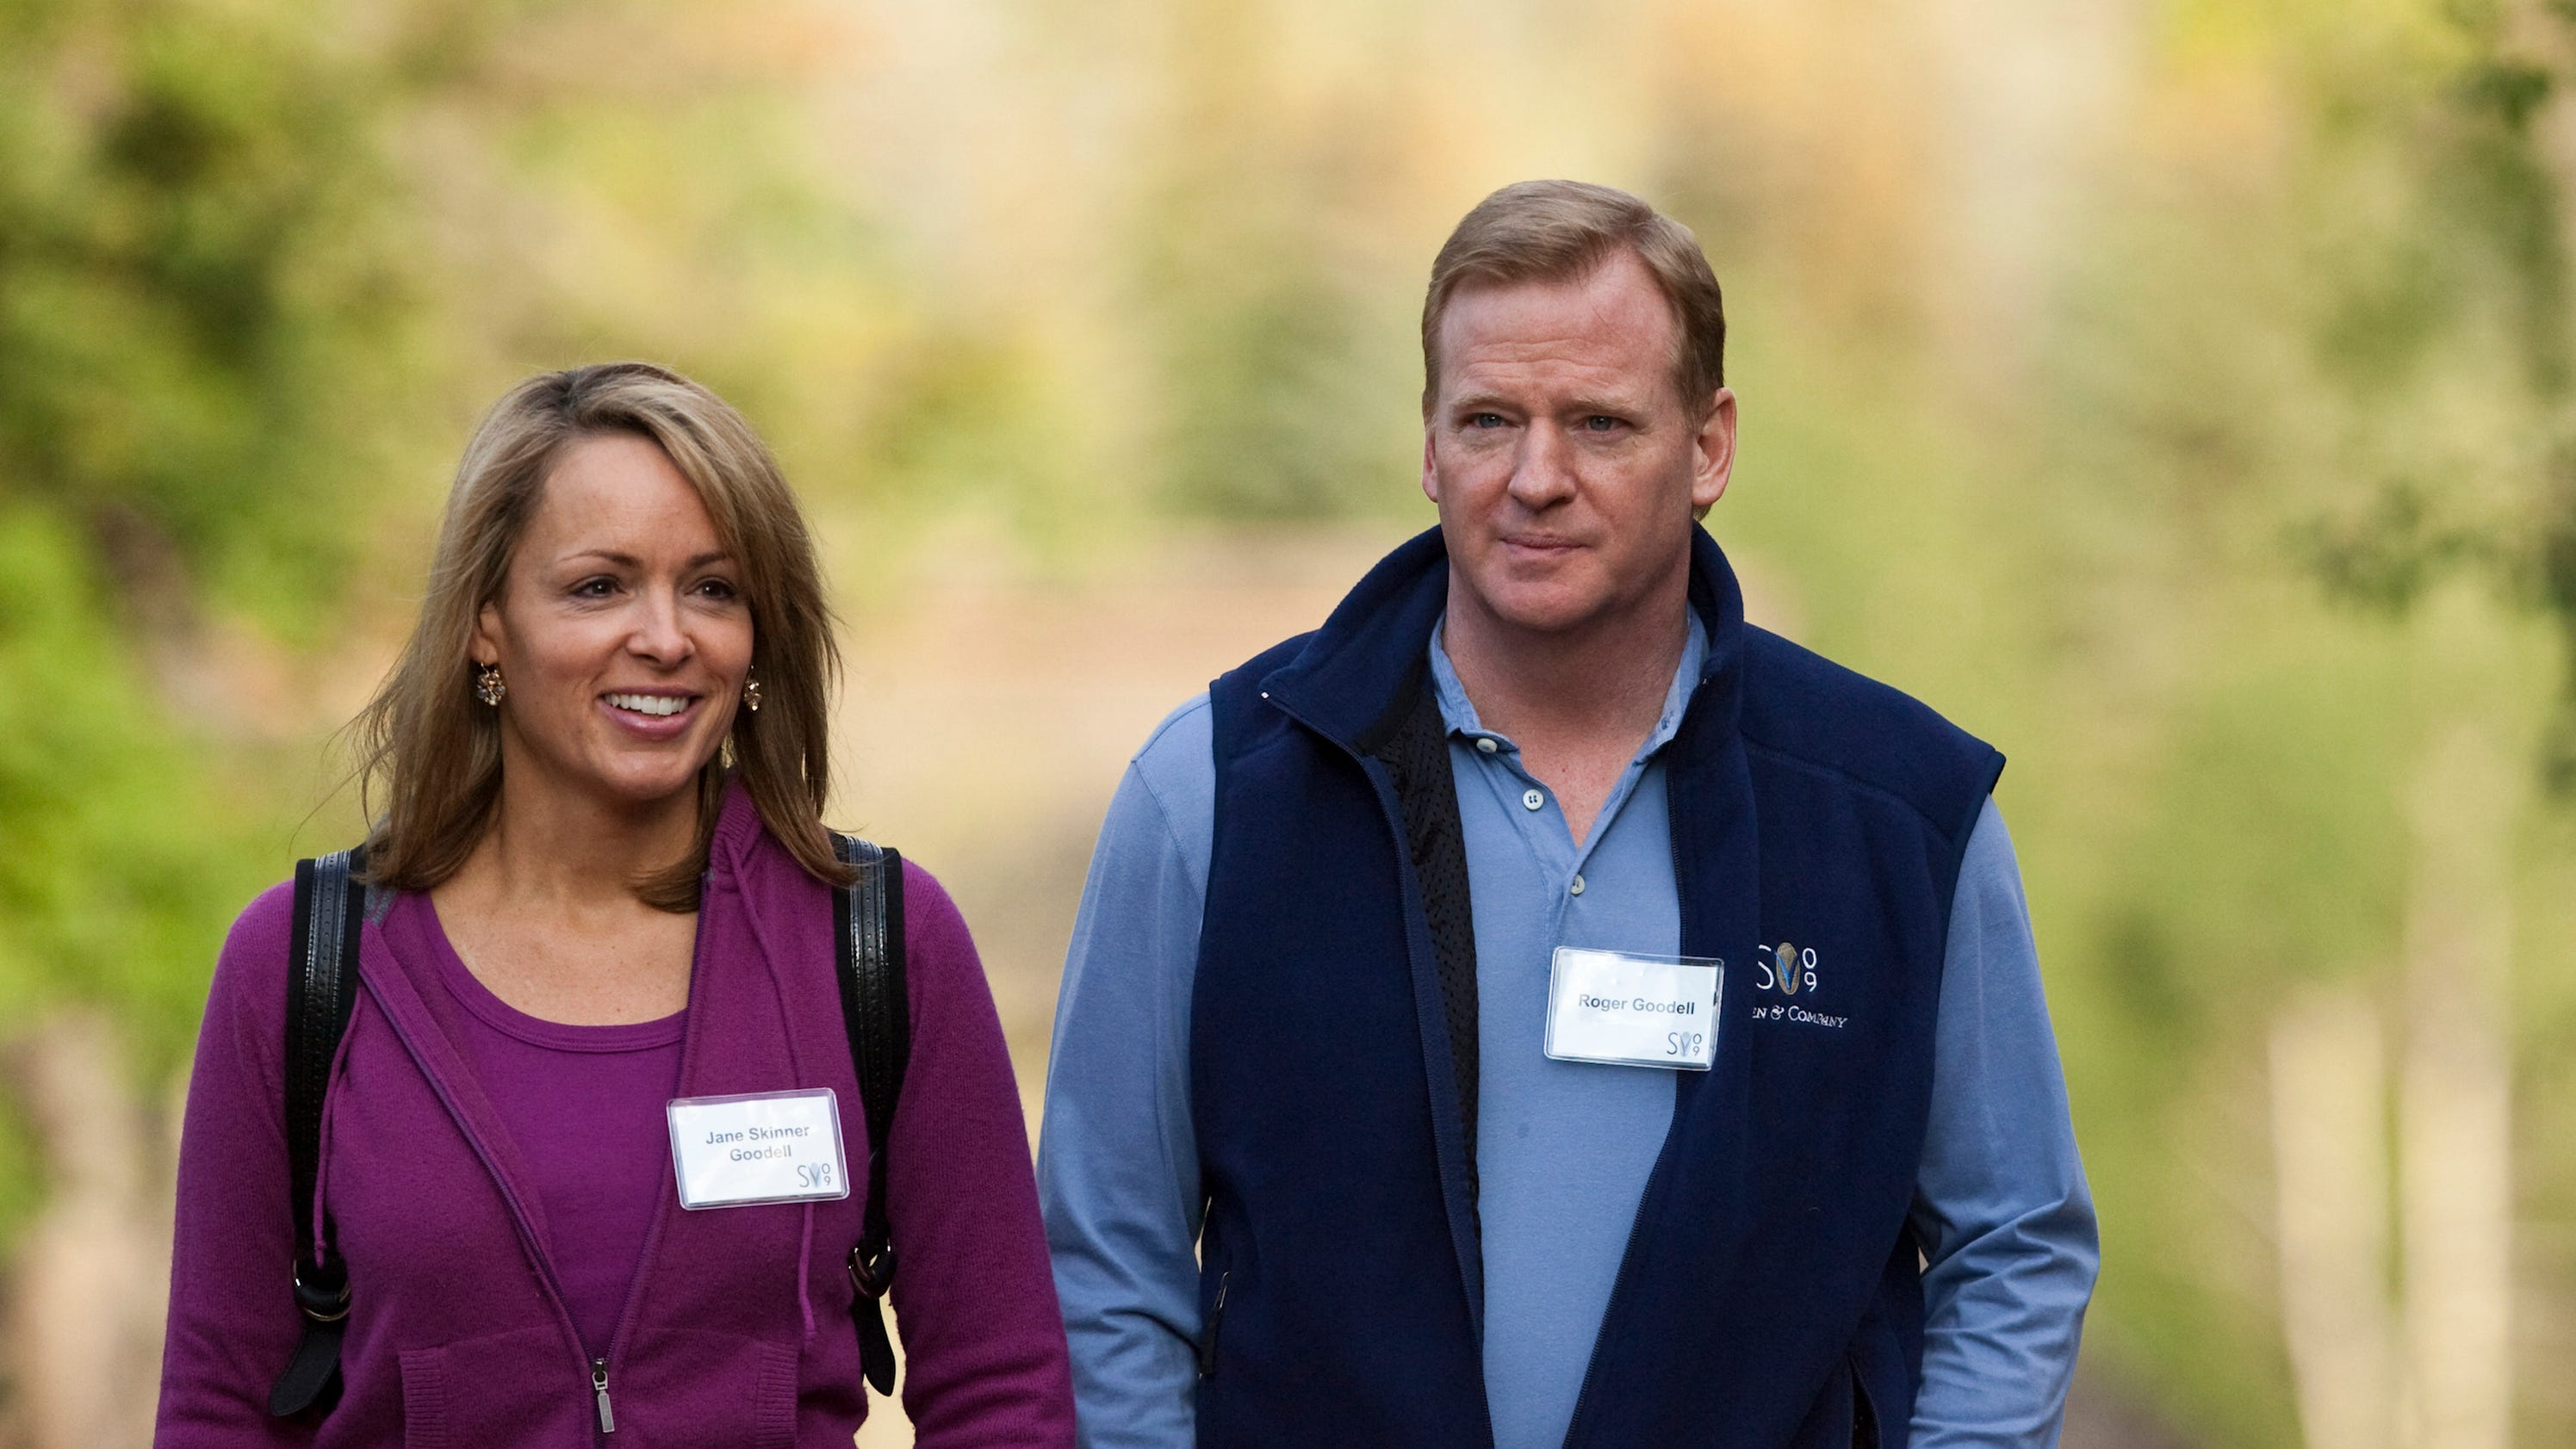 Goodell S Wife Defended Husband With Secret Twitter